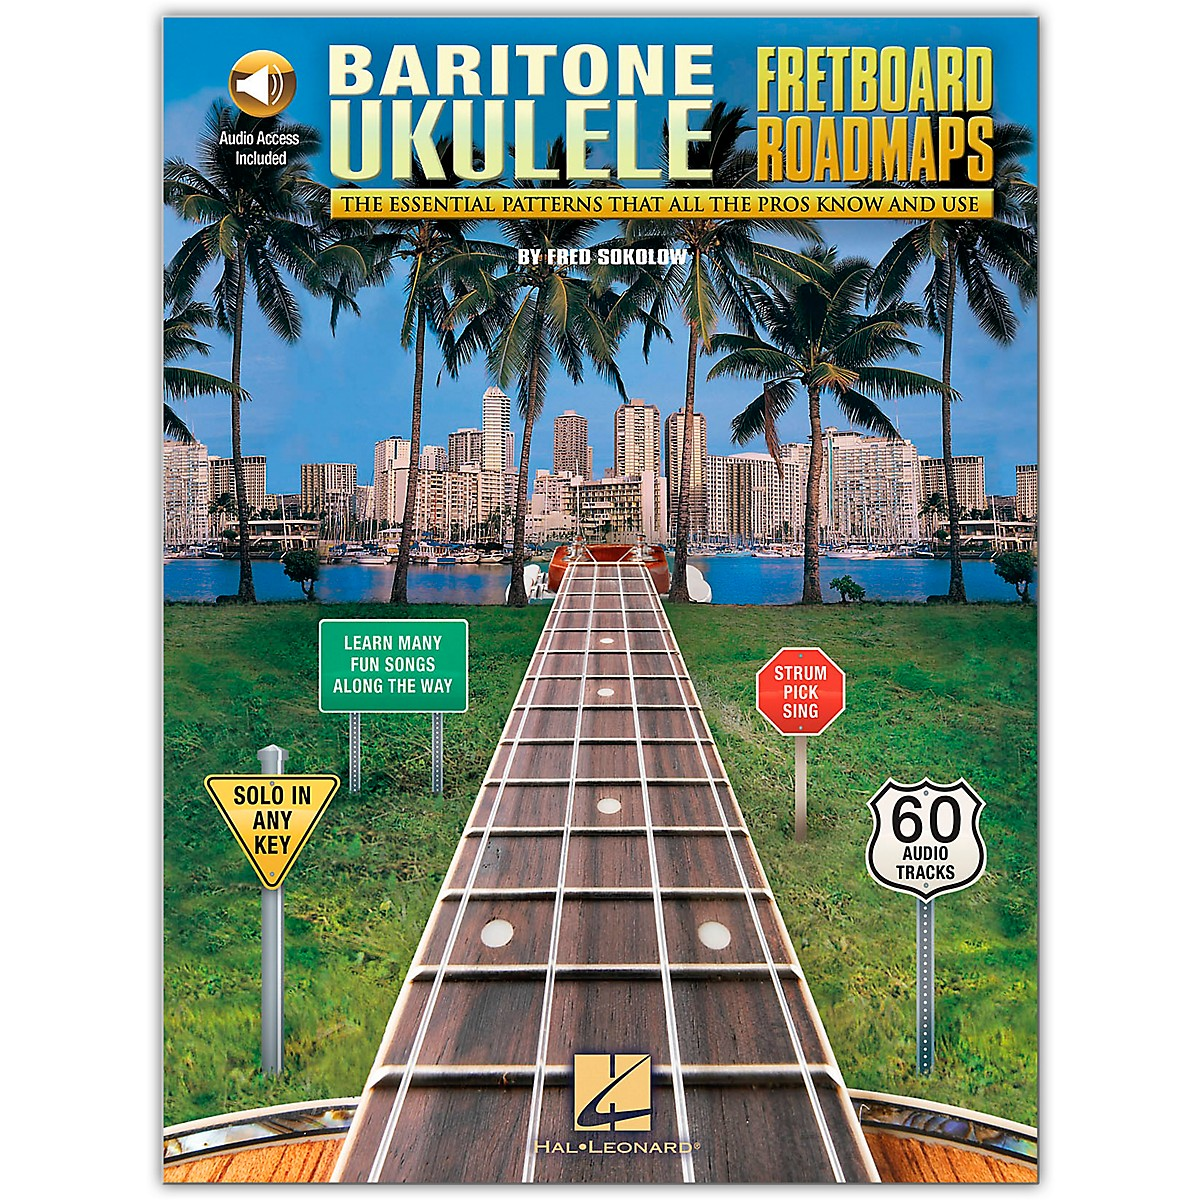 Hal Leonard Fretboard Roadmaps - Baritone Ukulele The Essential Patterns That All the Pros Know and Use (Book/Audio)